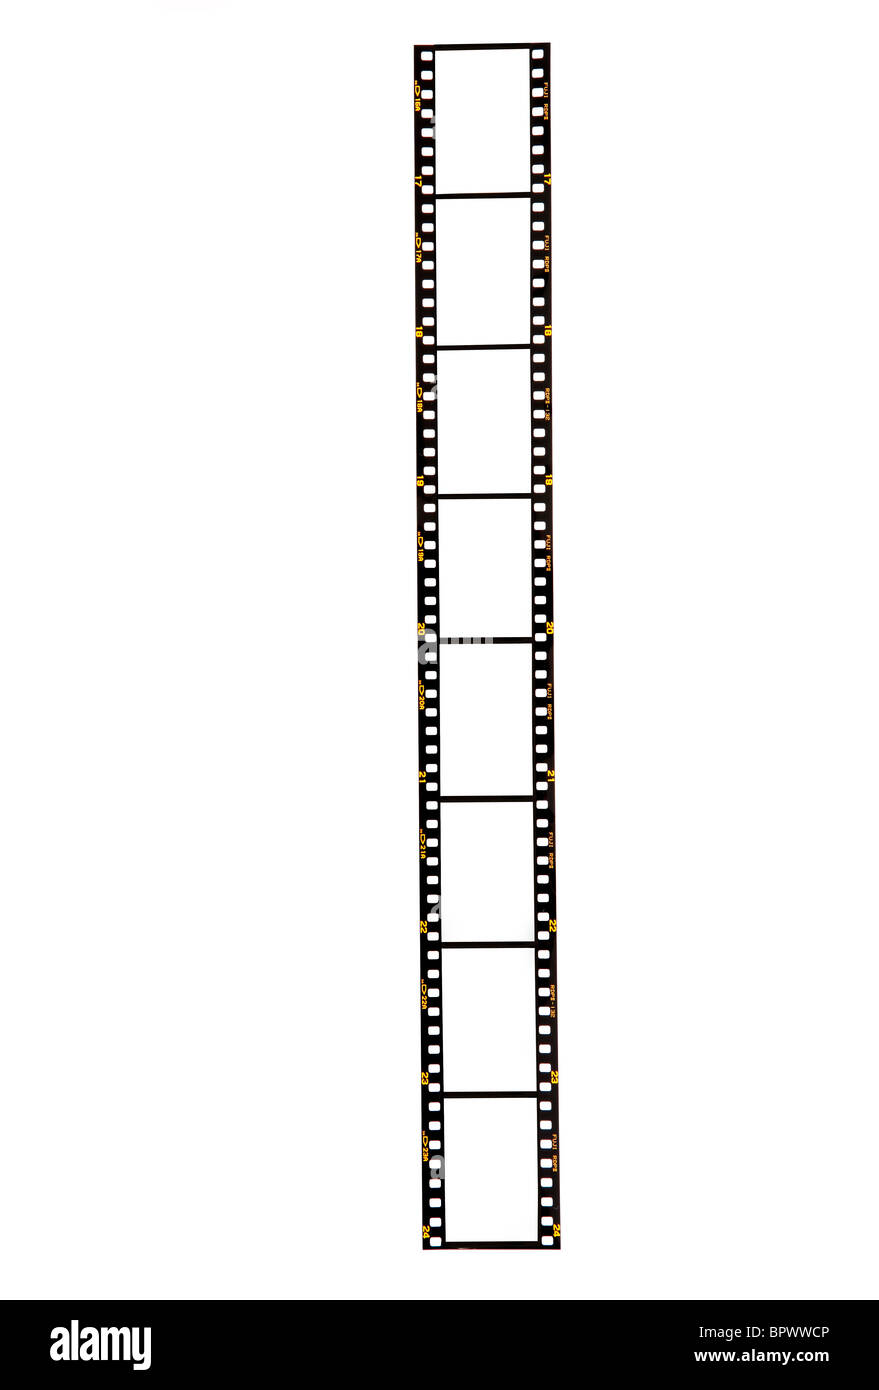 Blank 35mm film strip on a white background ready for your images to be inserted. Fuji, pre-digital from 1980s/1990s. - Stock Image